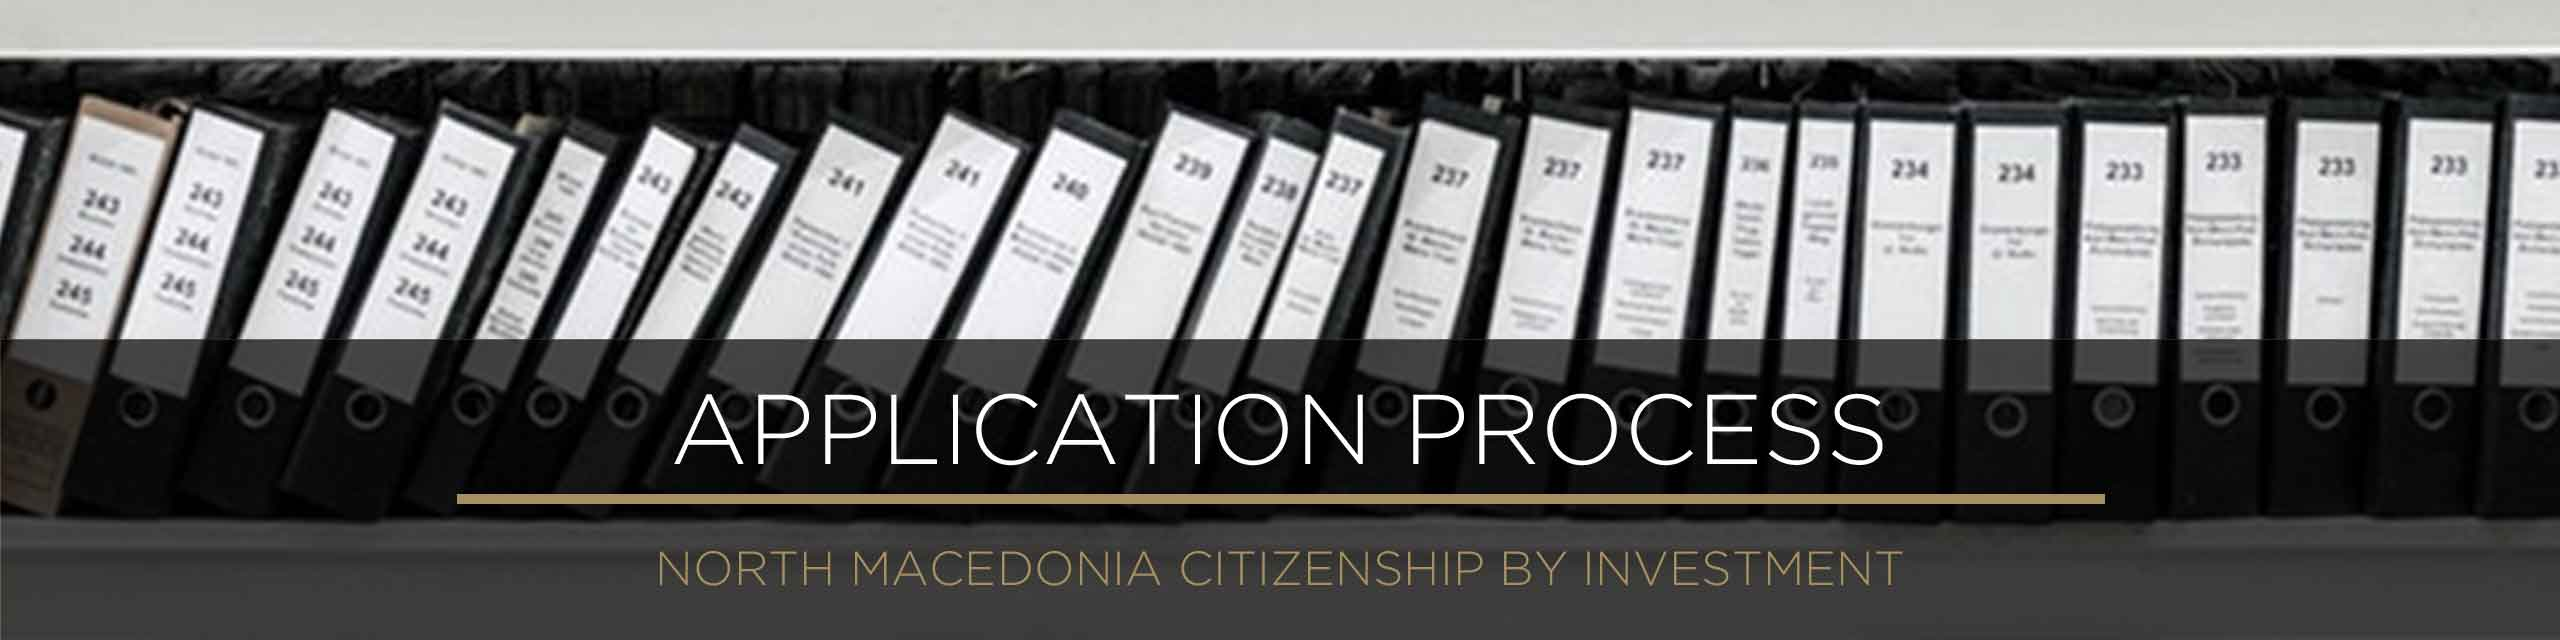 How to apply for North Macedonian citizenship - Application and Due Diligence Process